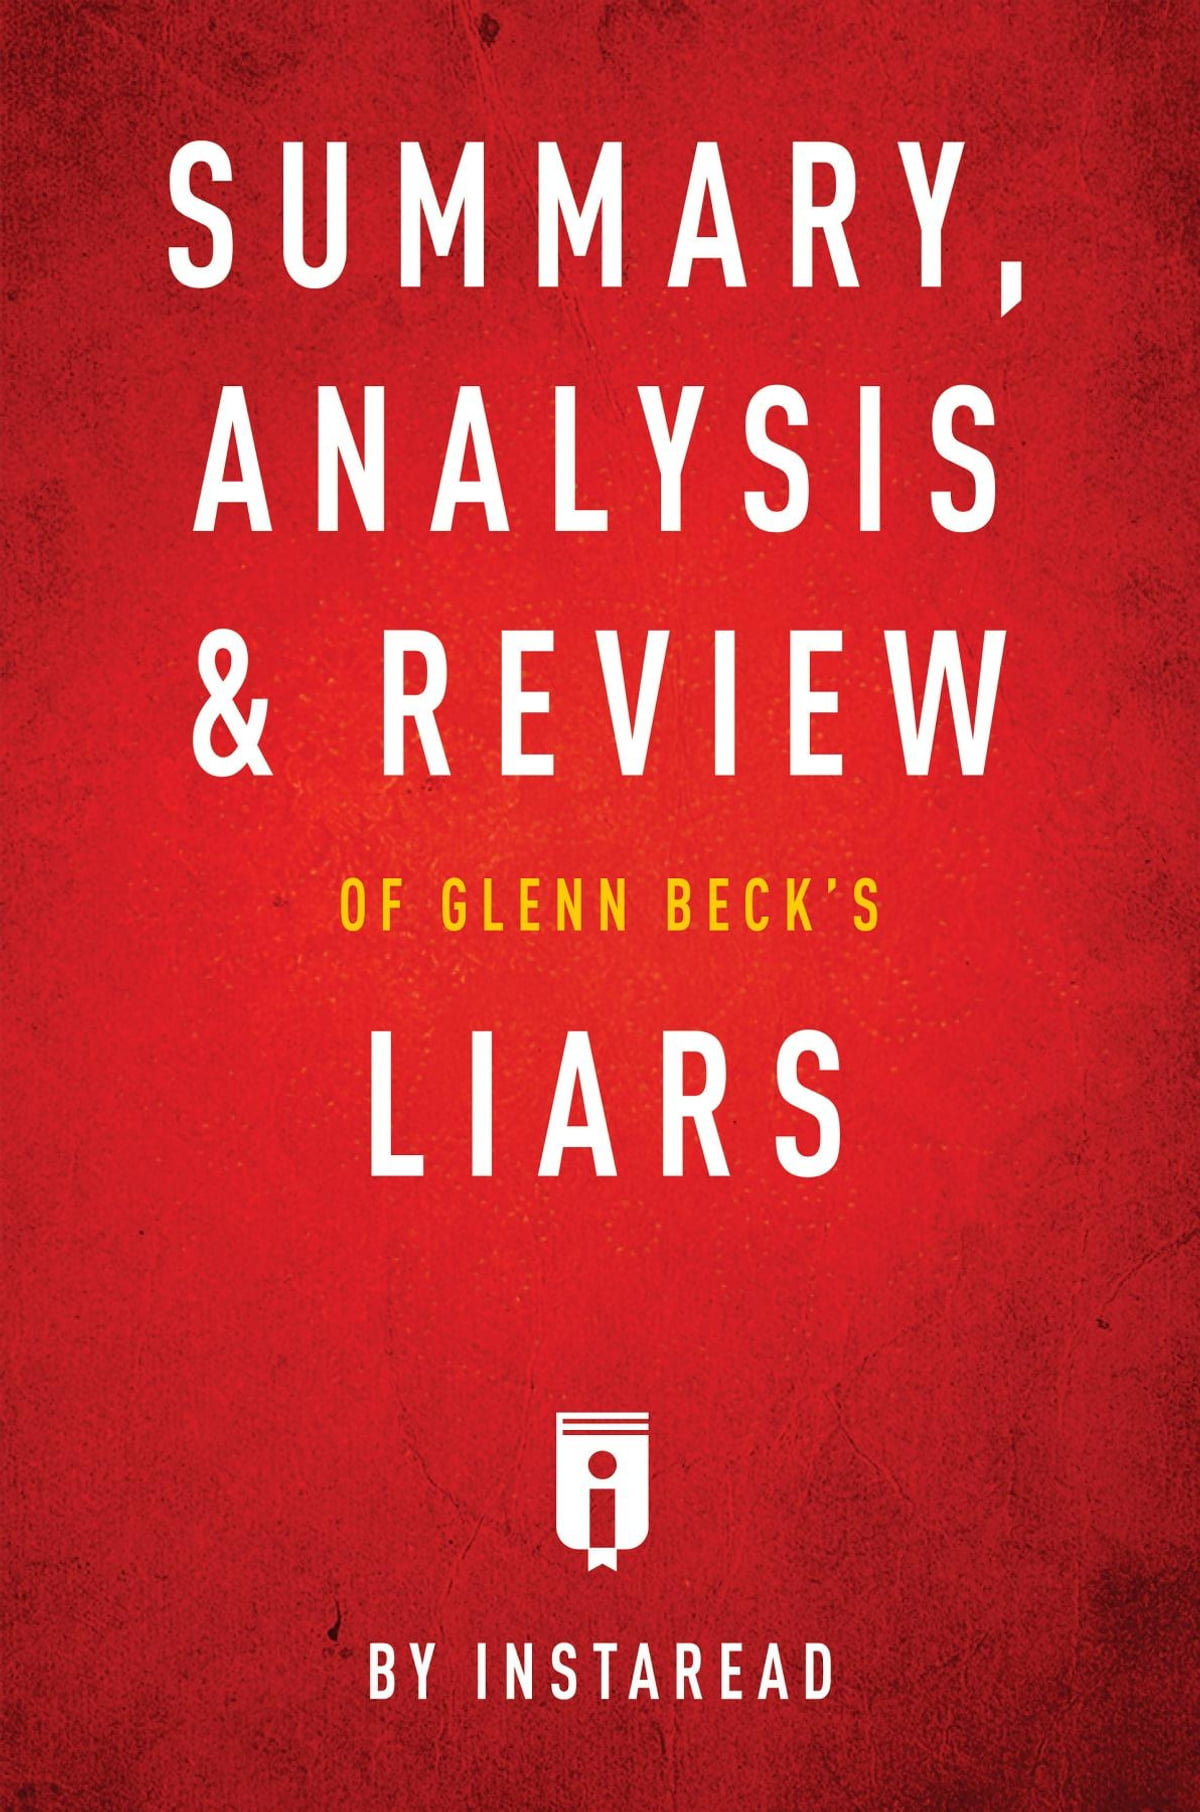 Summary Analysis Review Of Glenn Becks Liars By Instaread